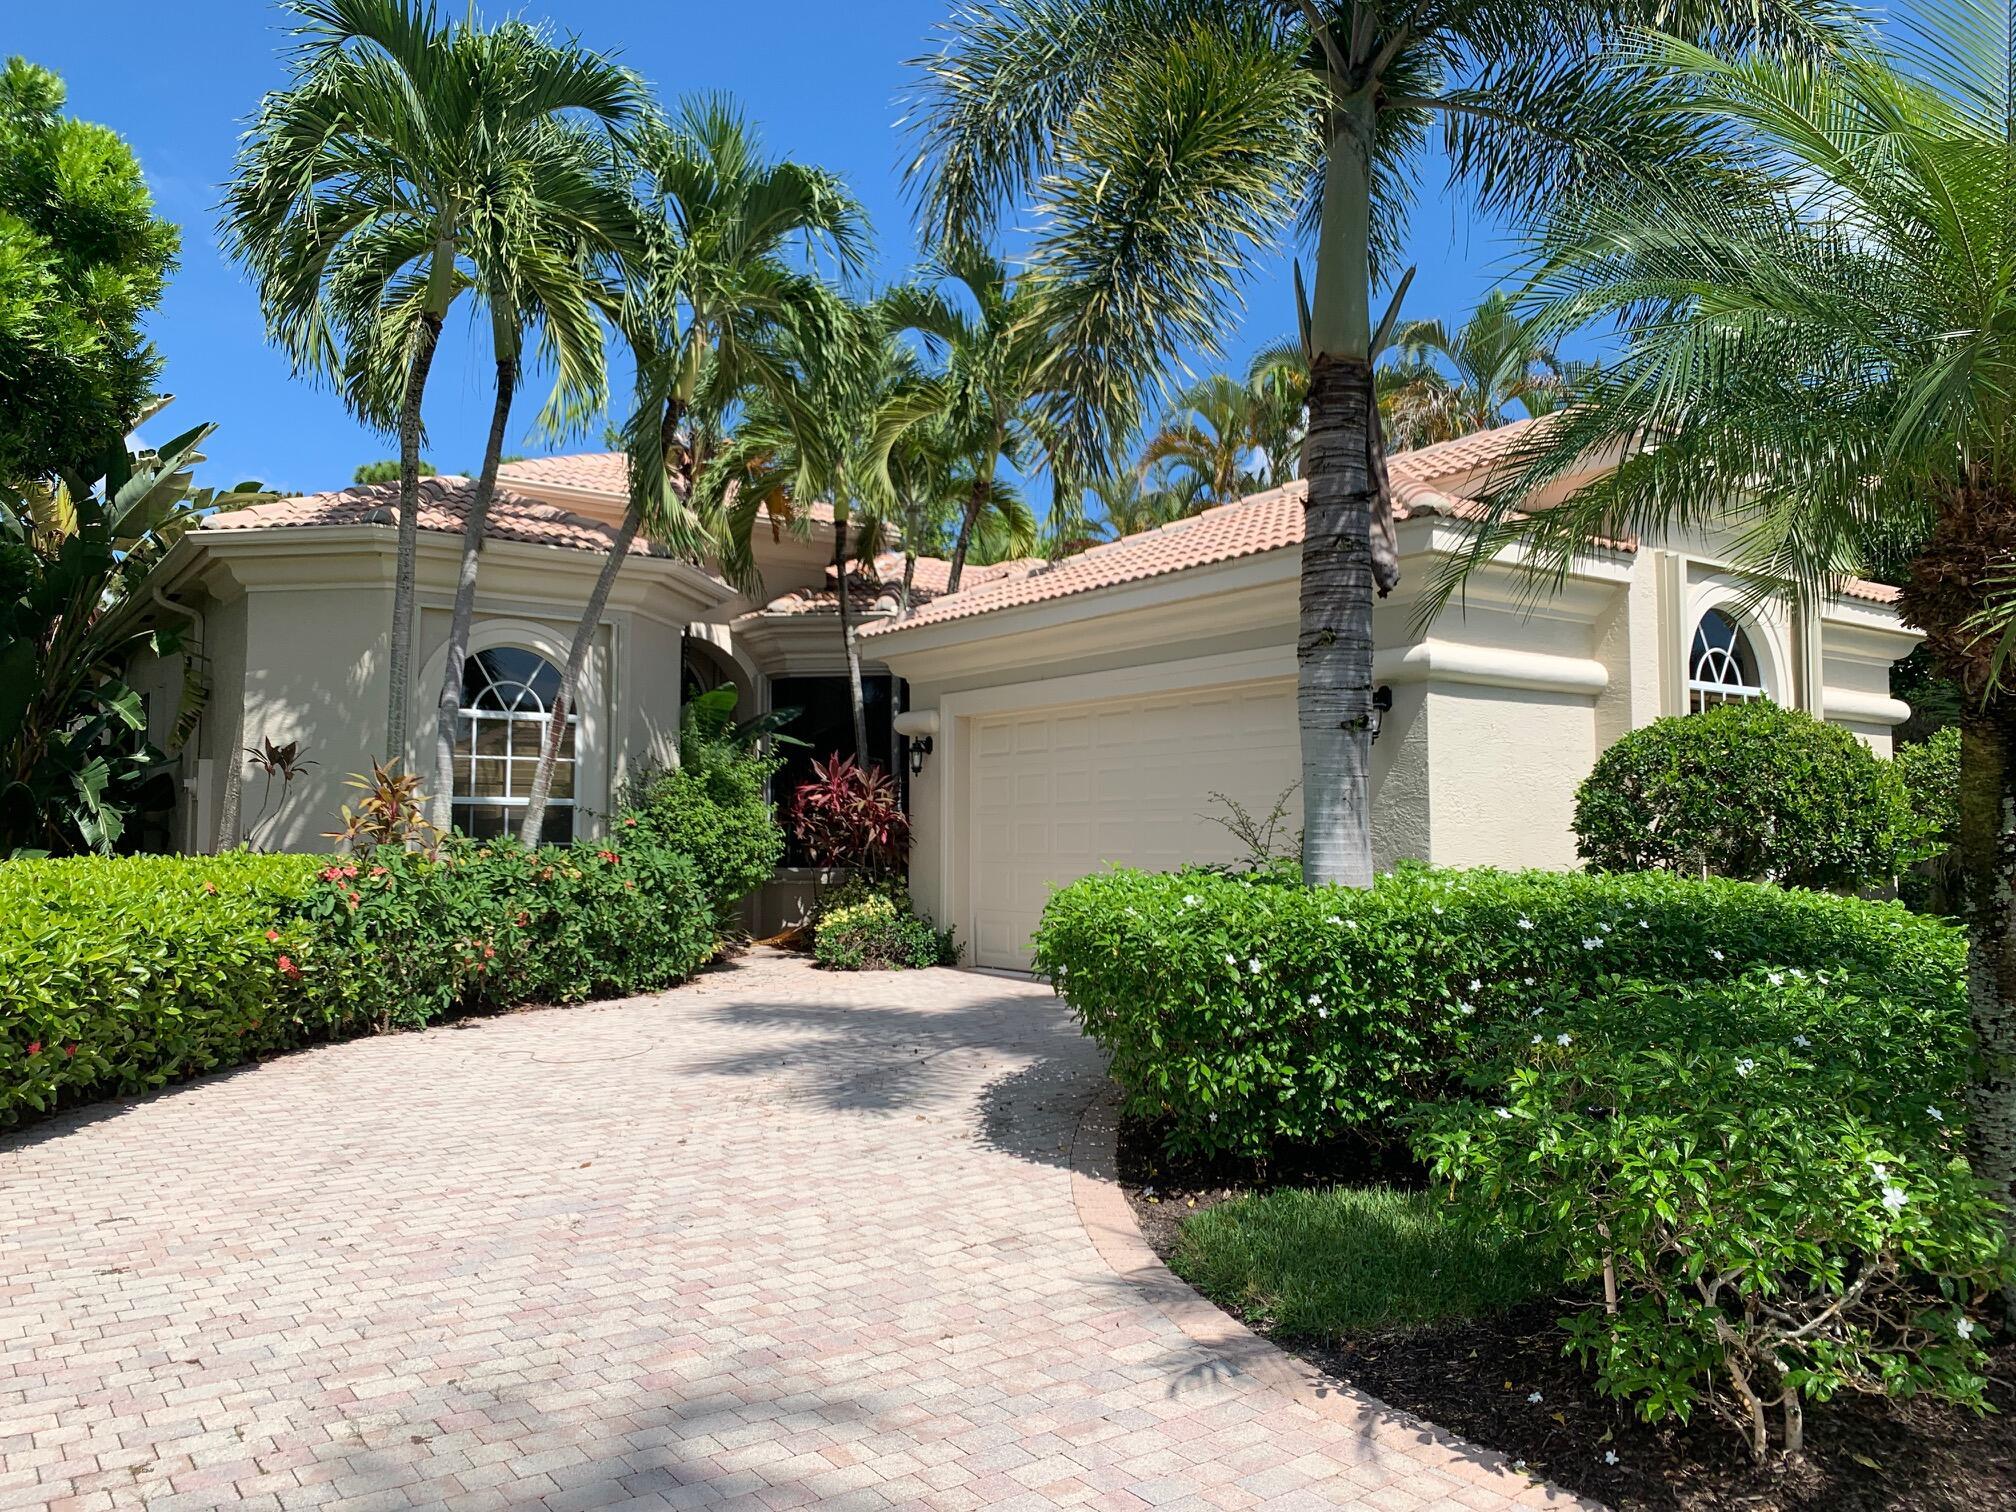 Lovely great room home in Platinum Rated Addison Reserve Country Club. This home has 3 spacious bedrooms, oversized master closets, a brand new pool heater, accordion shutters and much more. This home is priced to sell.